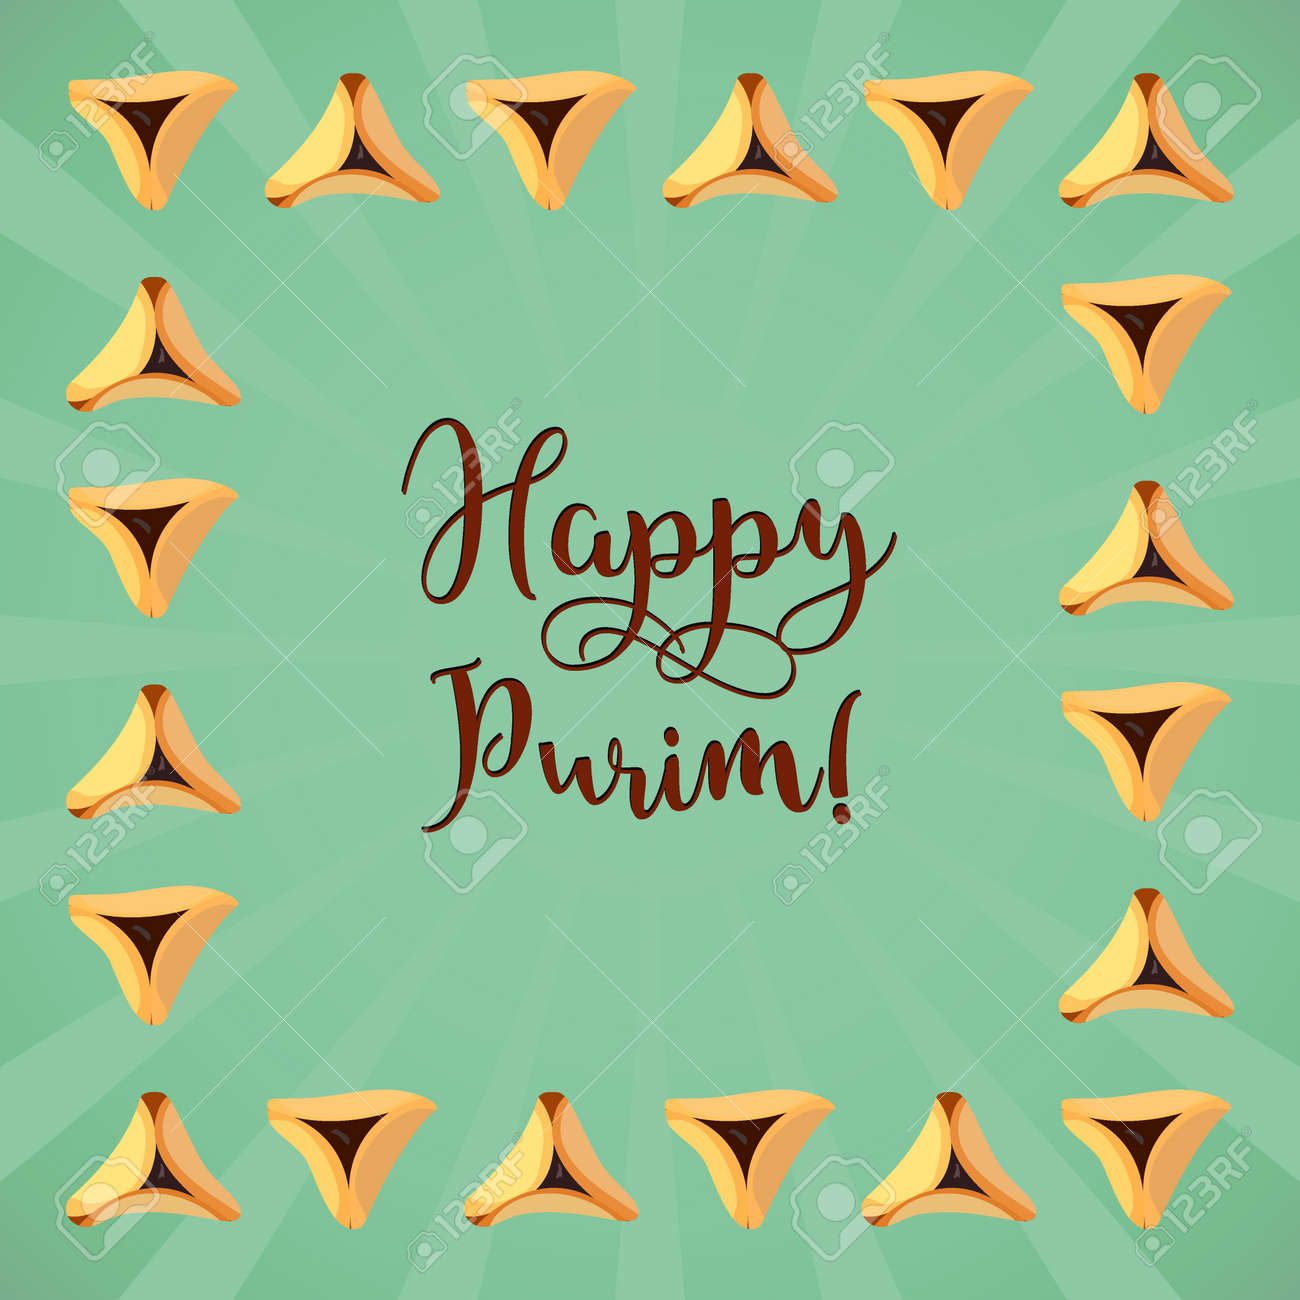 Jewish Holiday Of Purim Greeting Card With Traditional Hamantaschen